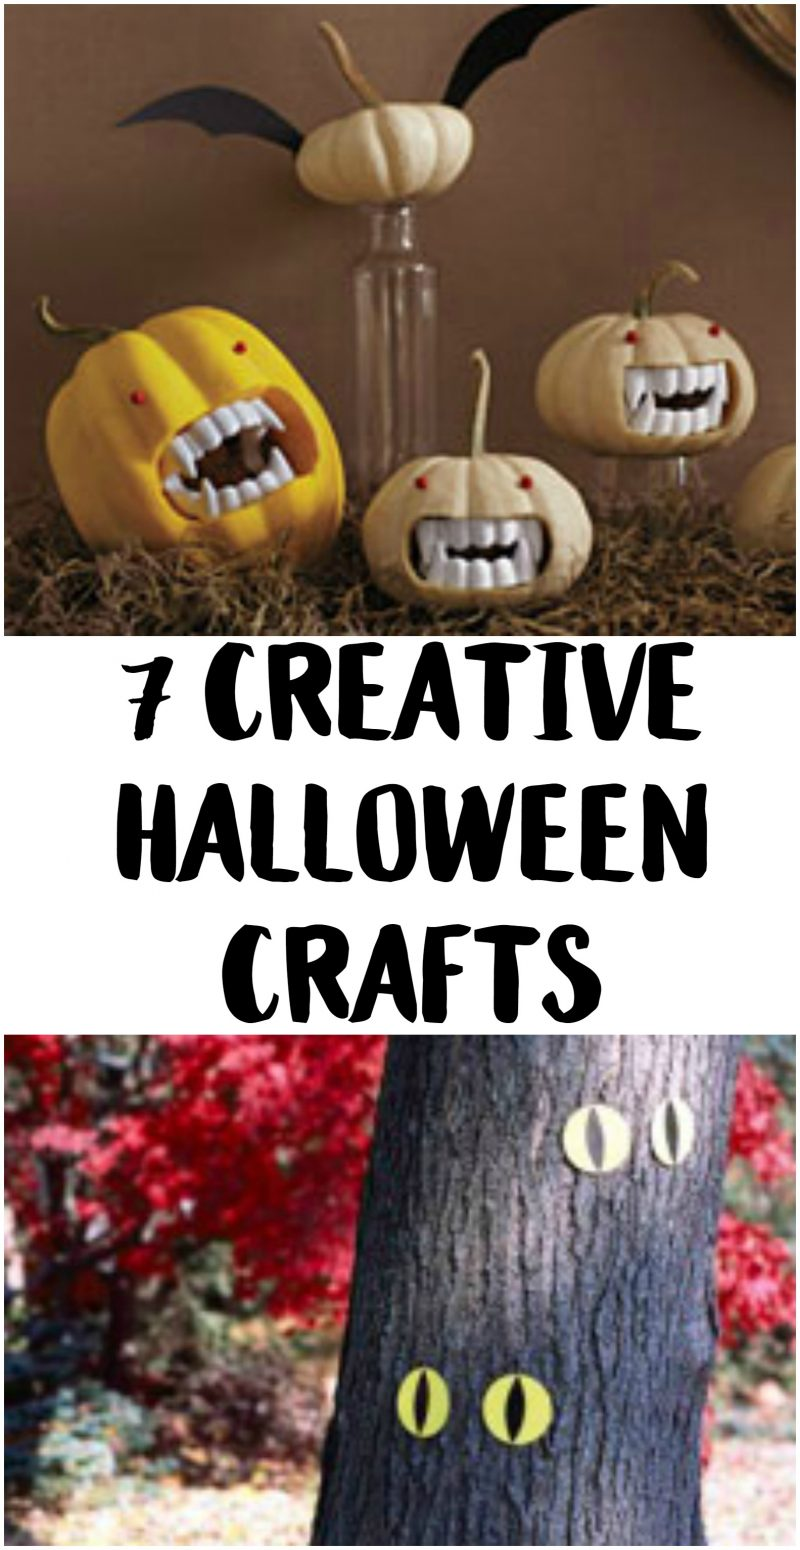 Creative Halloween Makeup Ideas A Subtle Revelry: 7 Halloween Crafts For Grown-Ups